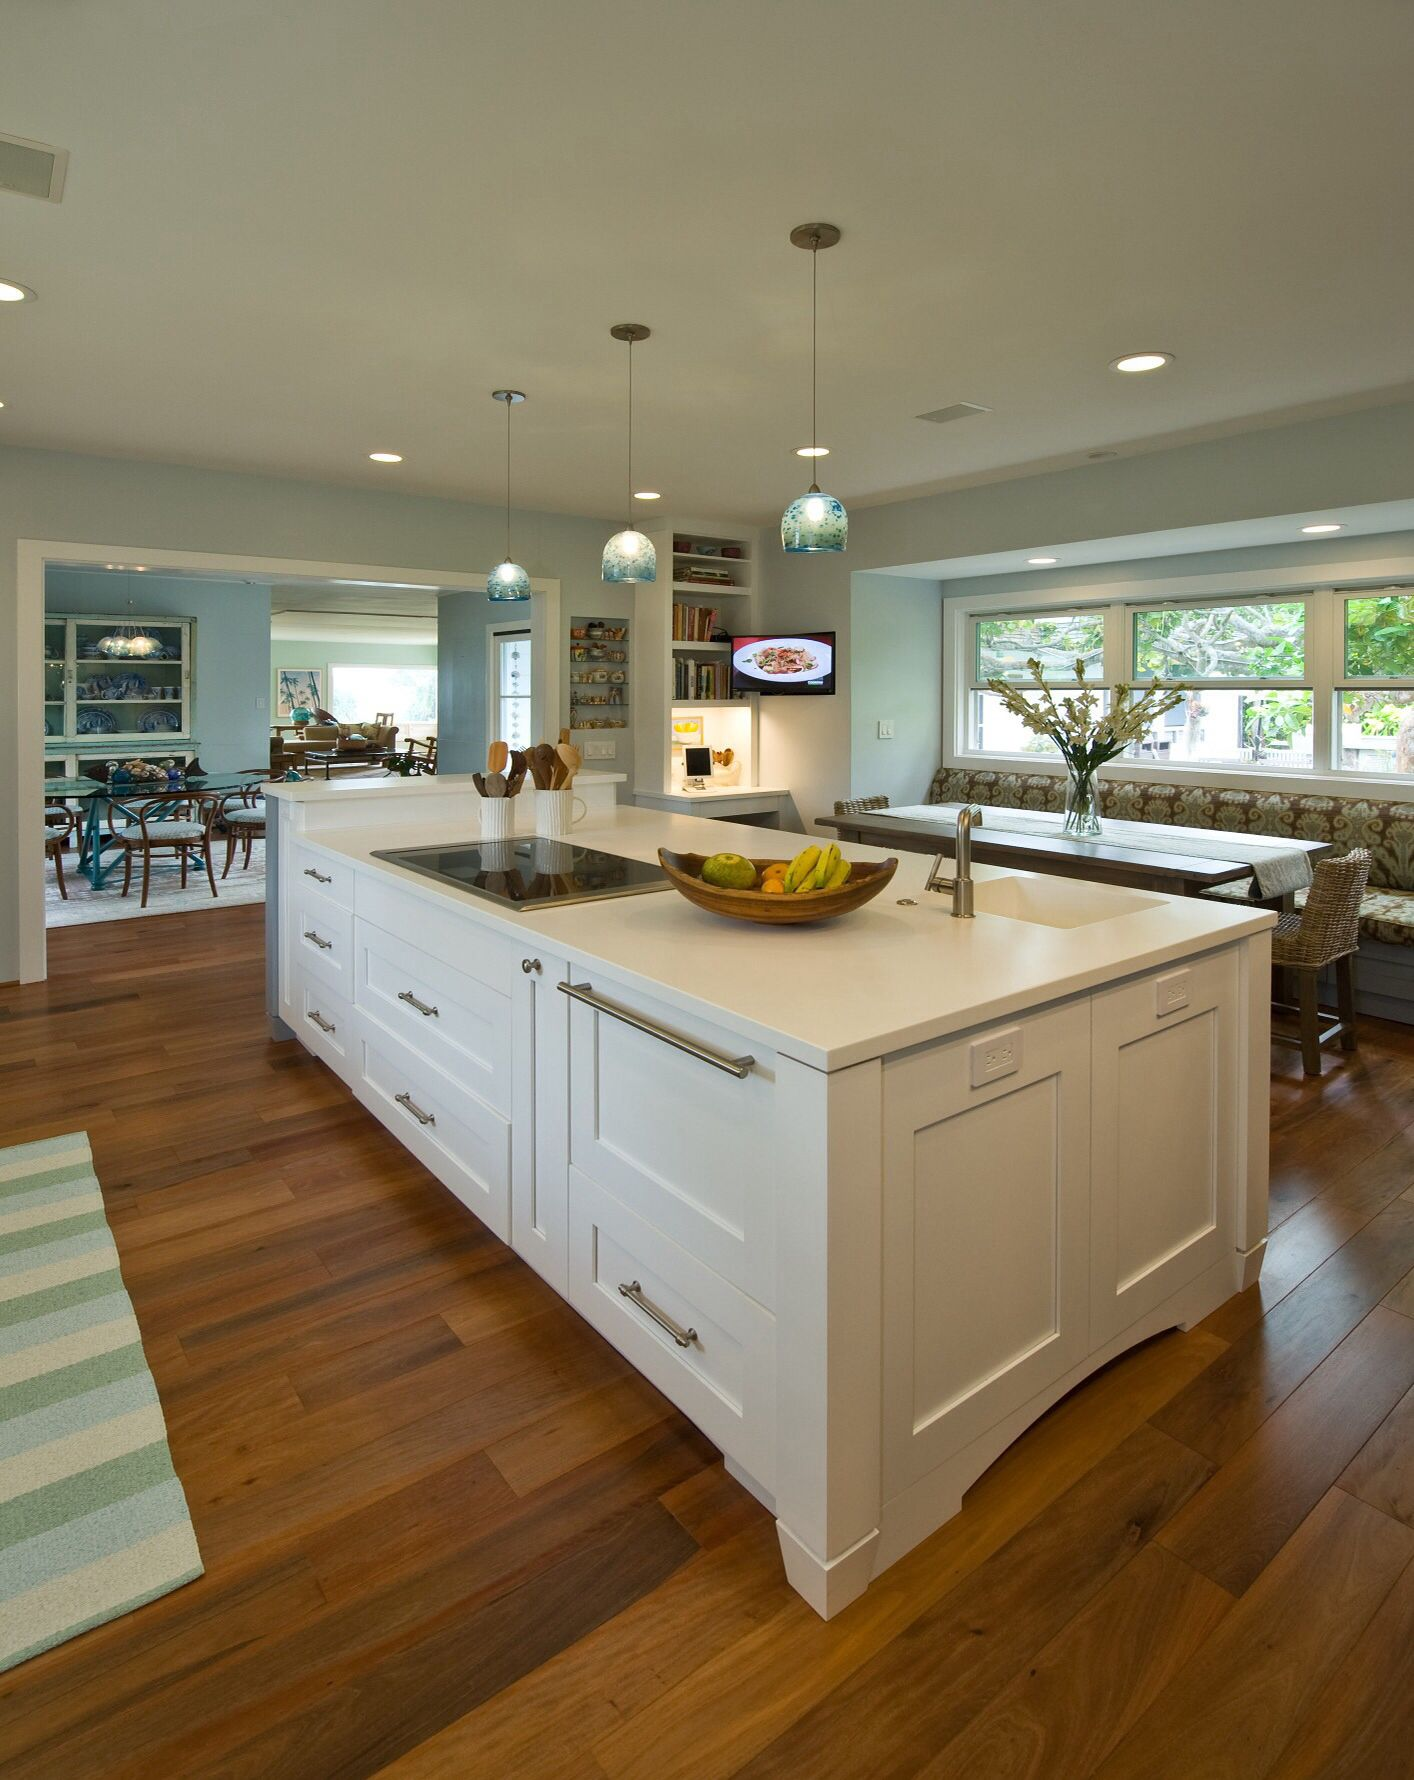 Blue and white kitchen designed by archipelago hawaii lanikai